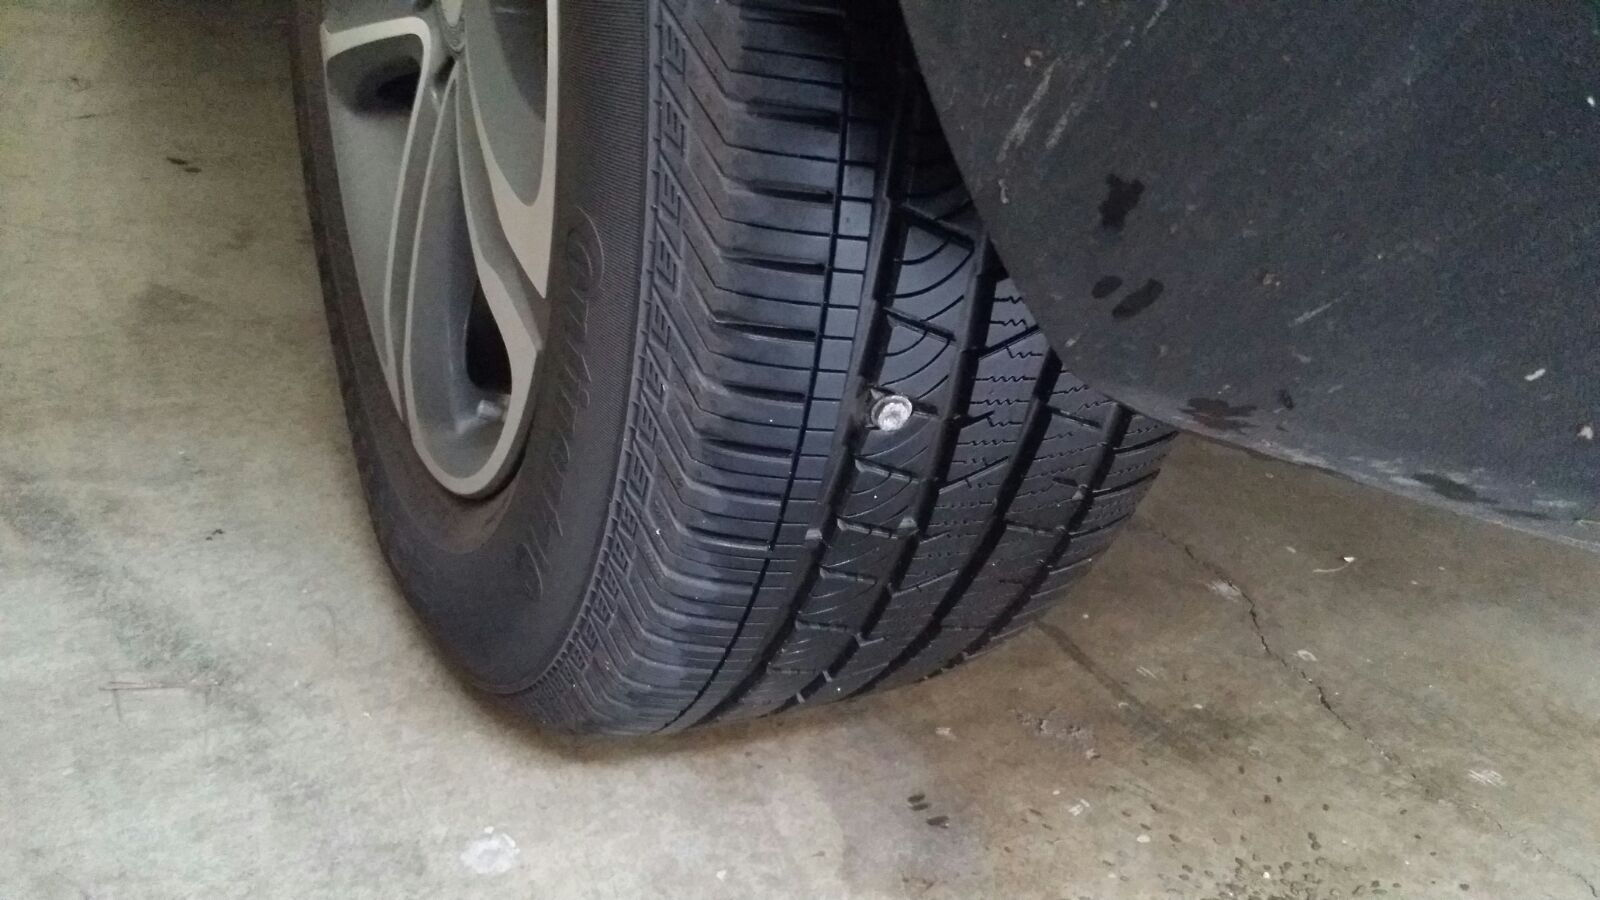 Patching or plugin??? On a Runflat tire - MBWorld.org Forums